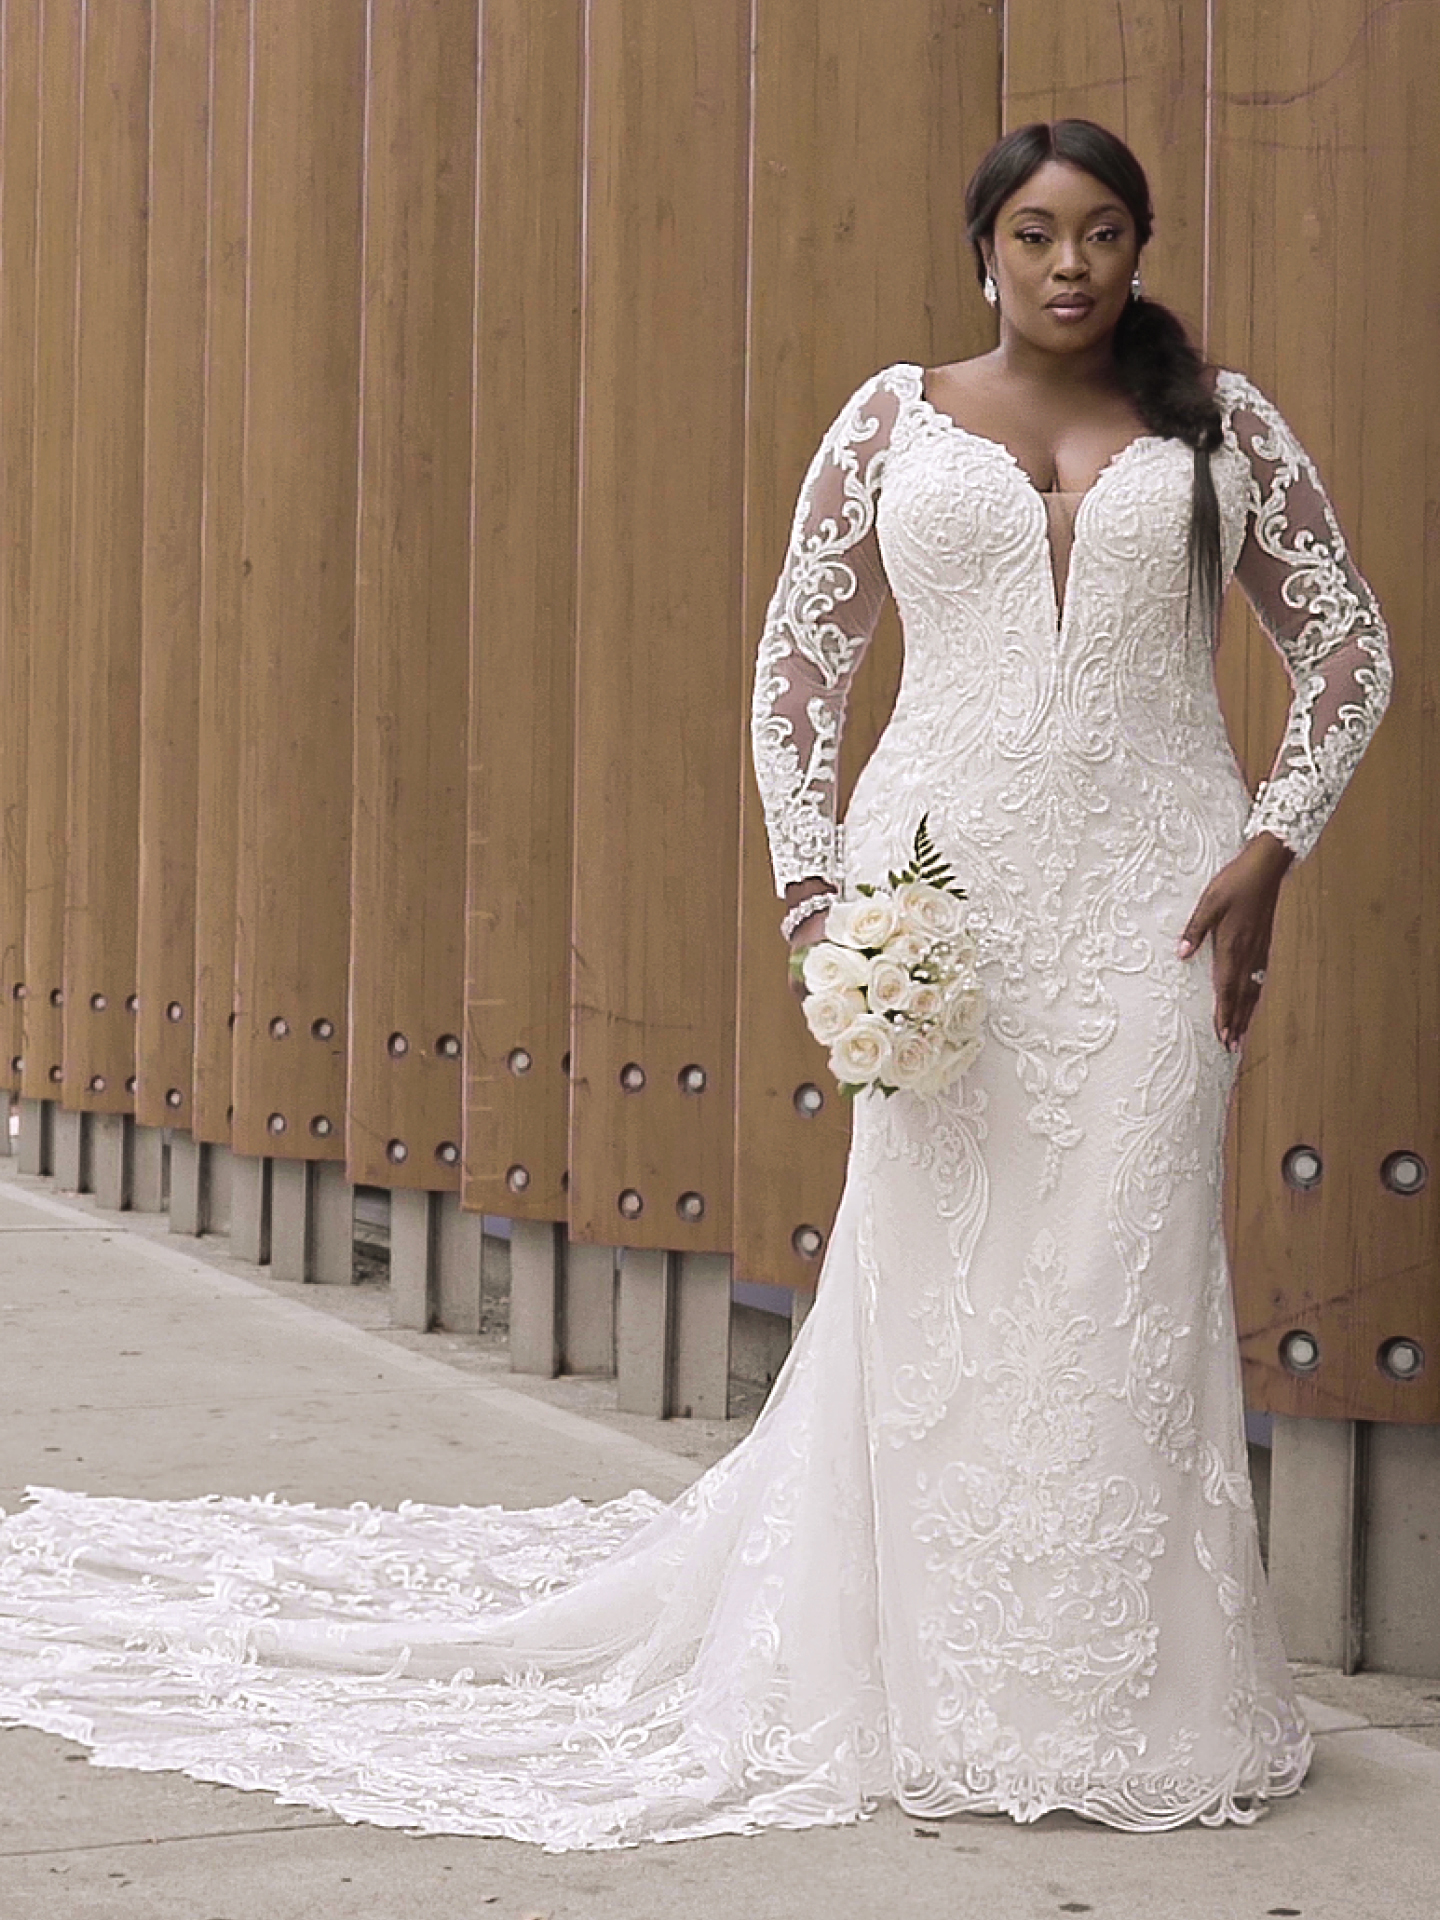 Black Curvy Model Wearing Plus Size Wedding Gown Called Hamilton Lynette by Sottero and Midgley